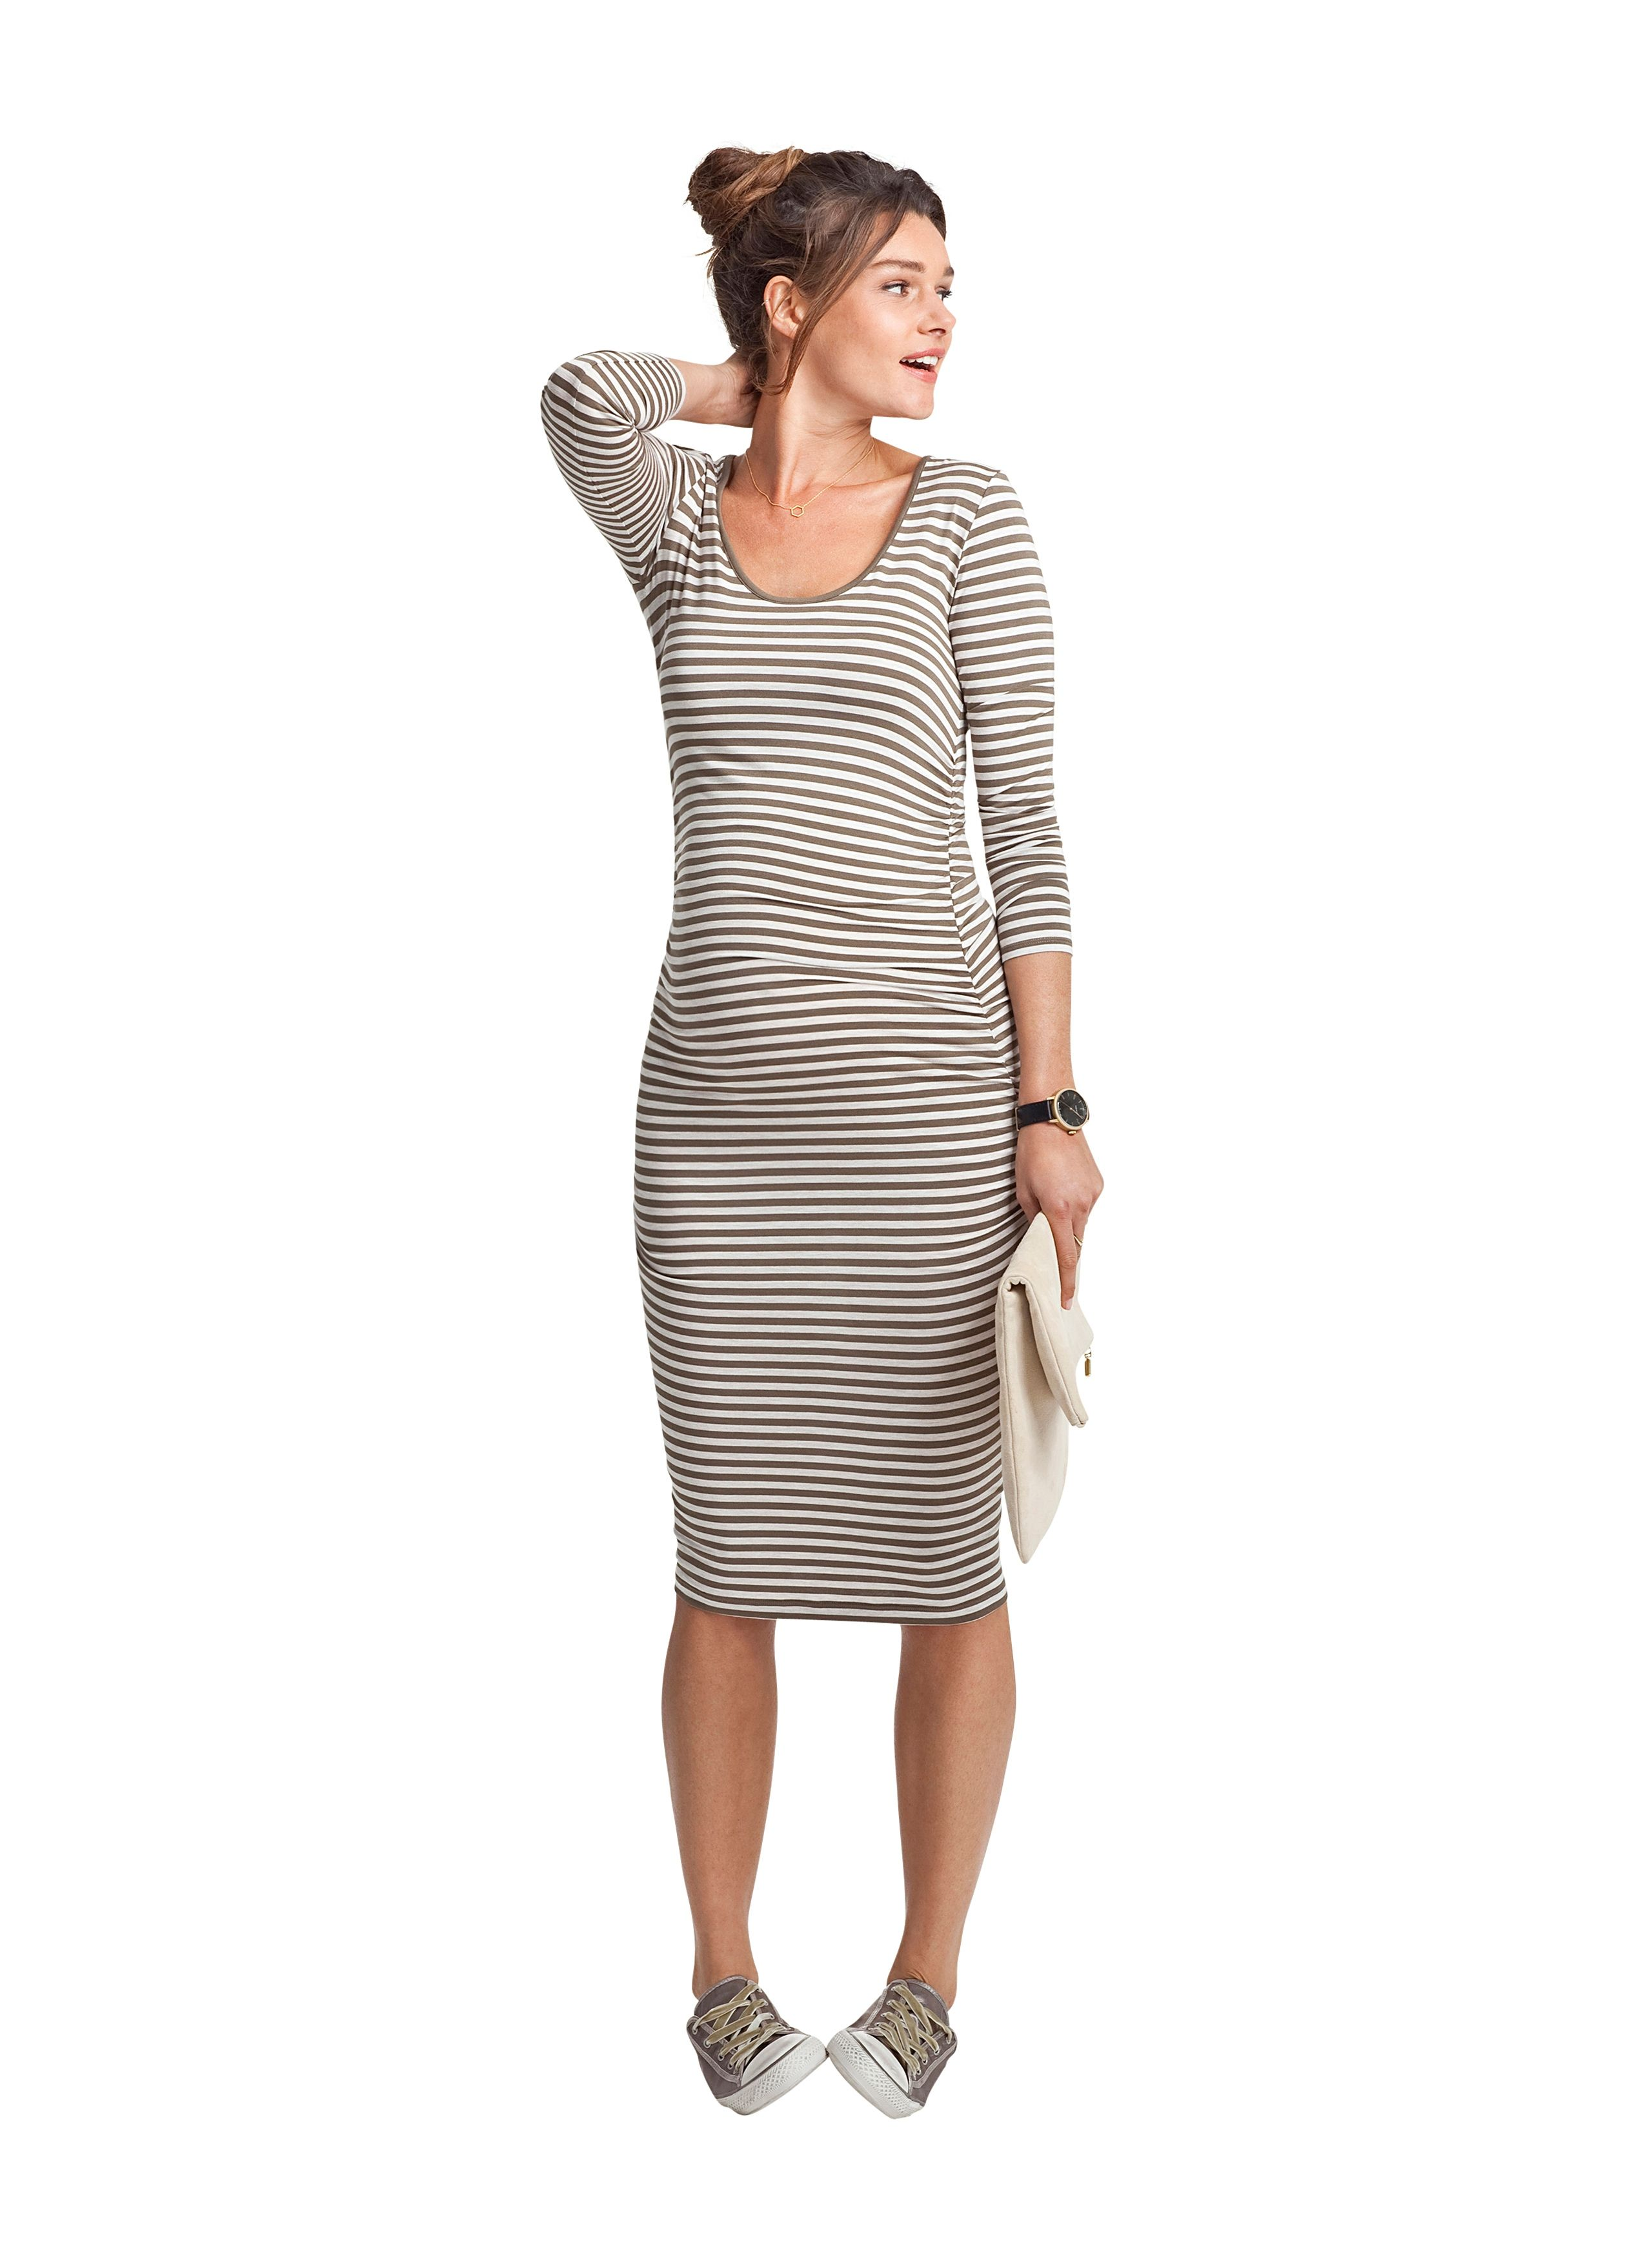 Hayfield striped maternity dress in green isabella oliver uk hayfield striped maternity dress at isabella oliver shop our luxury maternity collection today for stylish premium quality maternity clothes that will ombrellifo Choice Image